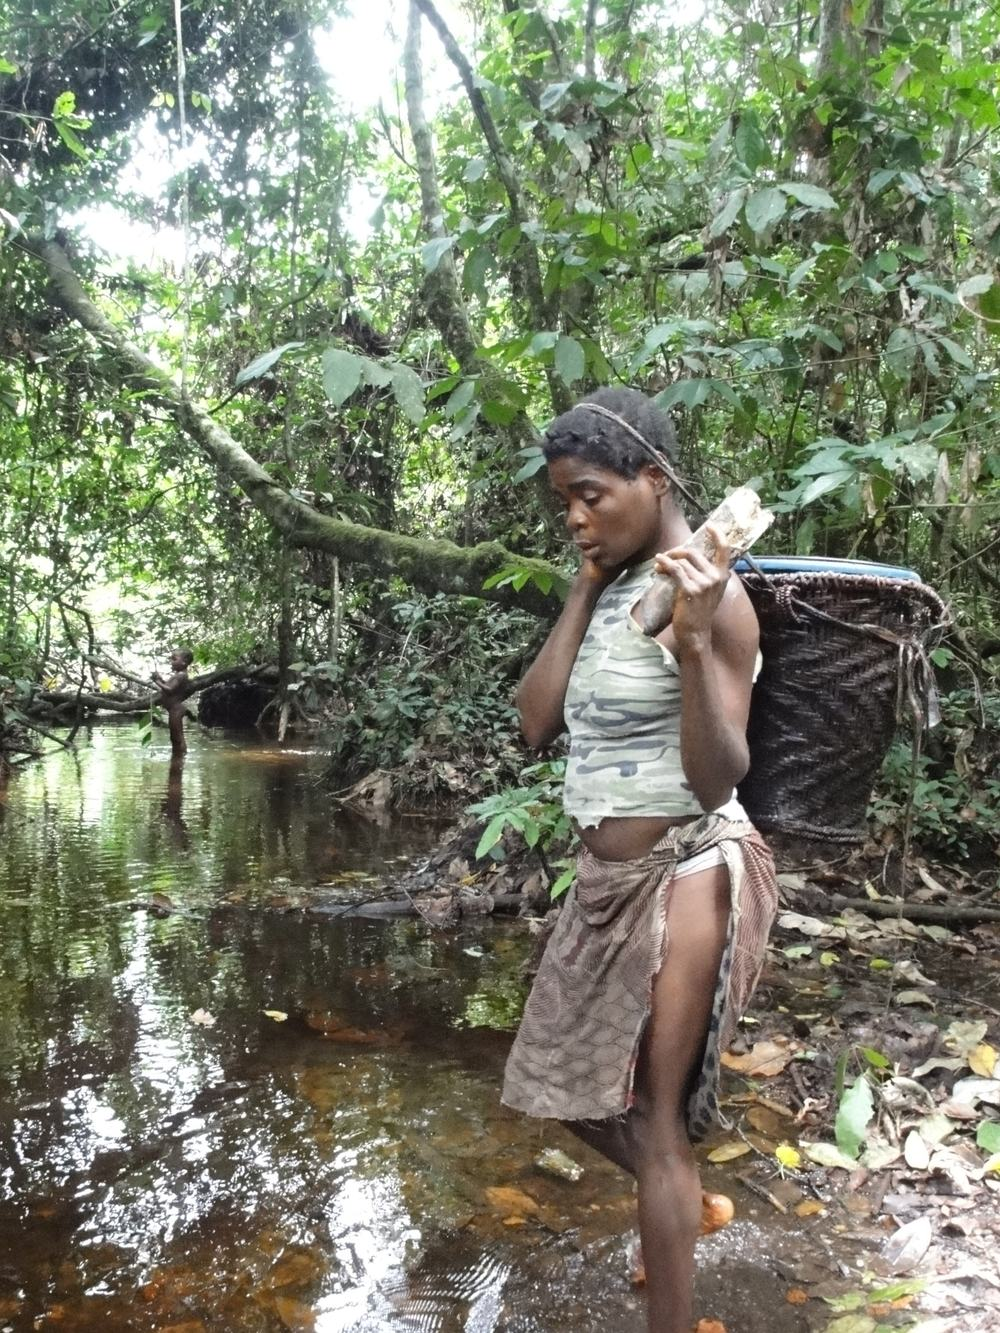 Botele fishing with burning firewood in her hand. Photo credit: Karline Janmaat